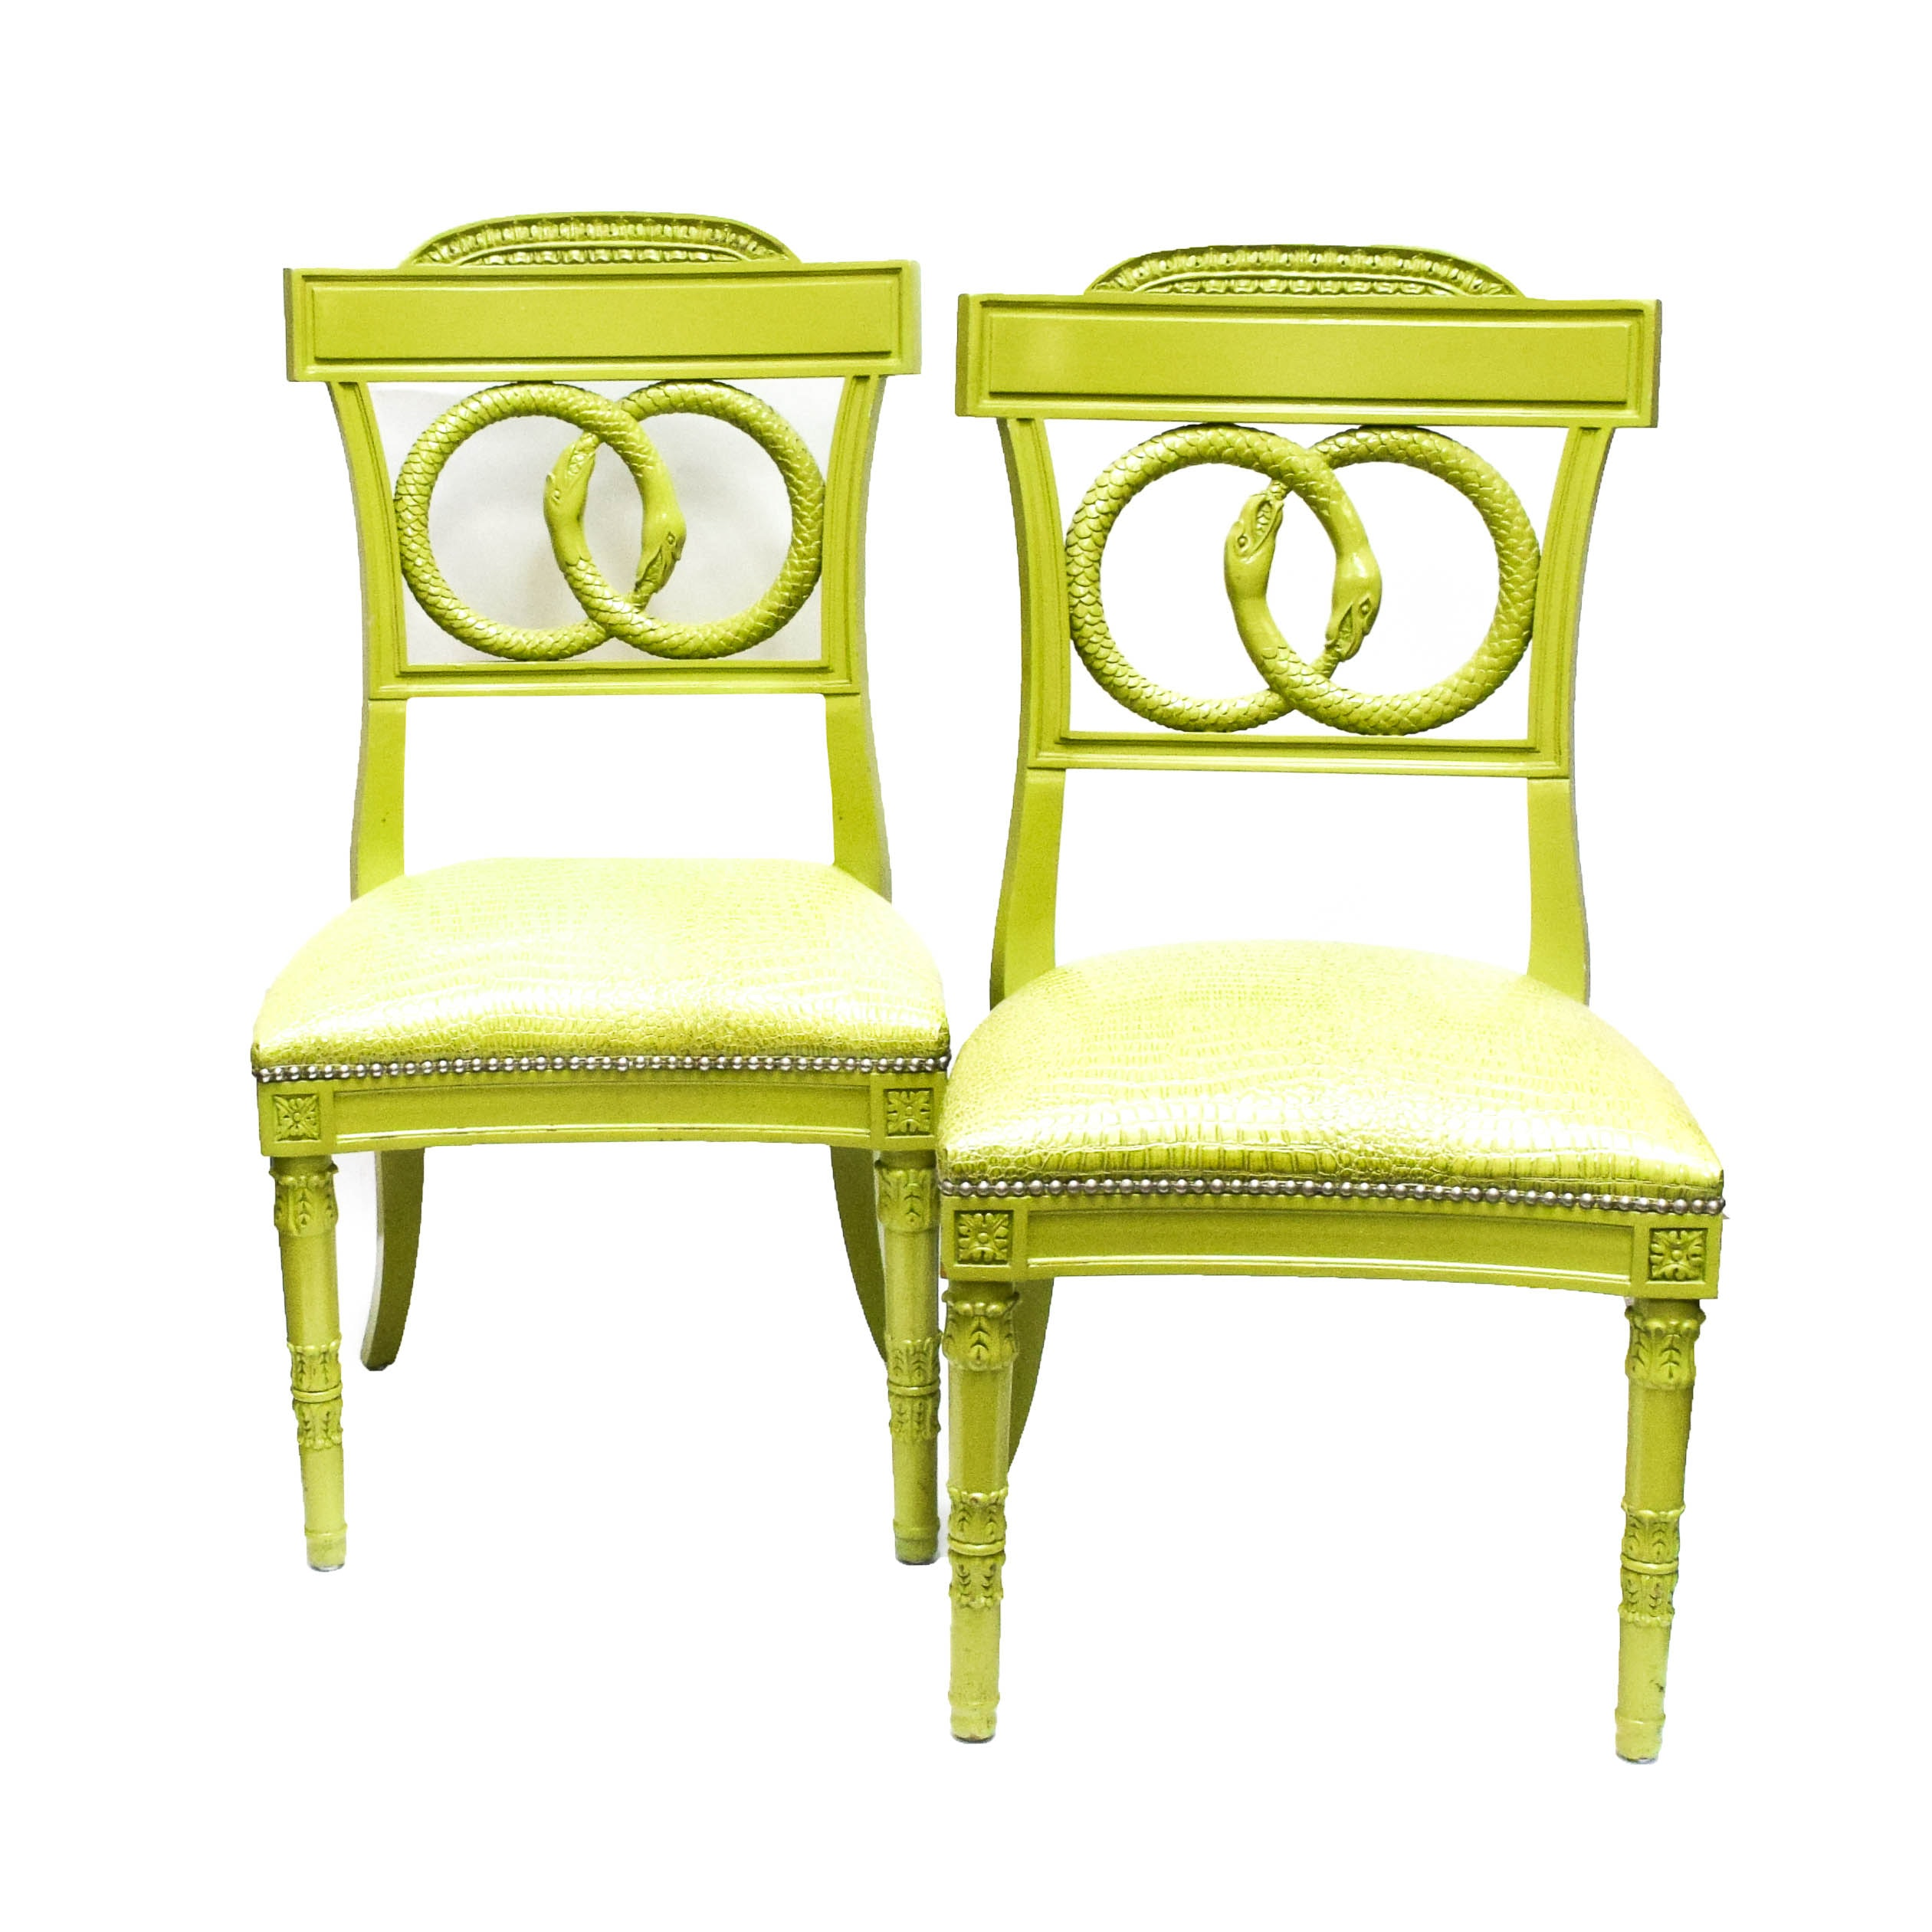 Pair of Painted Chartreuse Regency Style Chairs